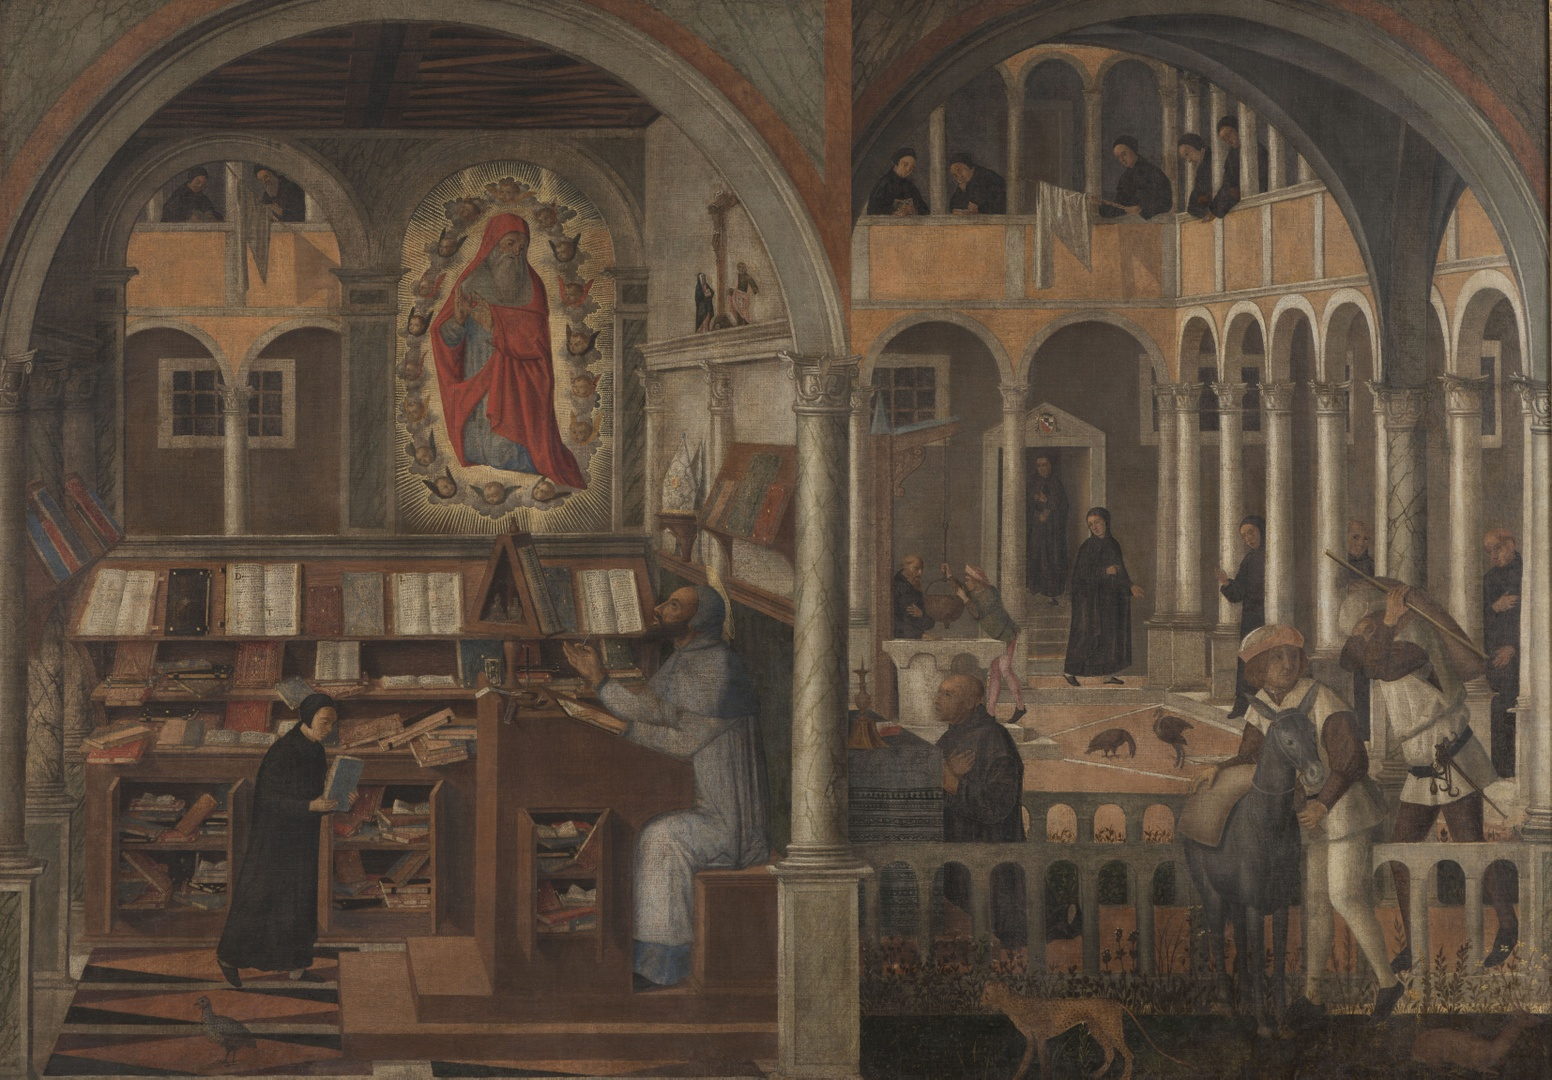 St. Jerome appearing to St. Augustine and the Discovery of Flour in St. Benedict's Monastery